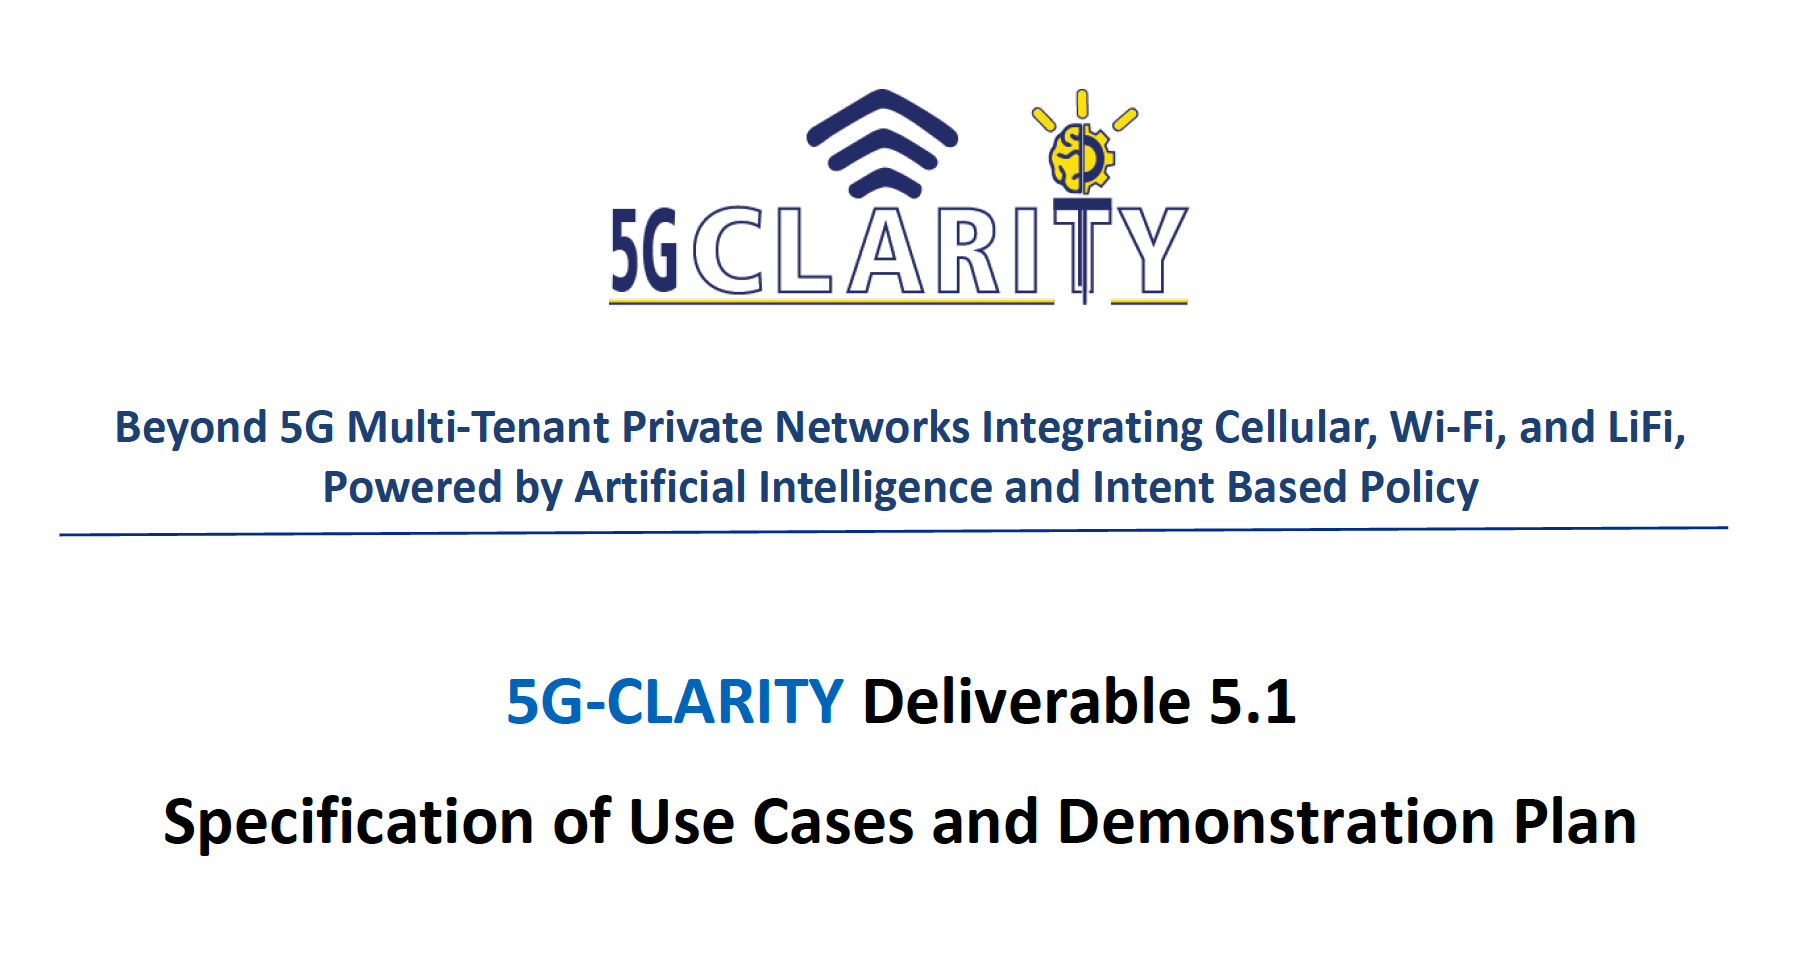 5G-CLARITY D5.1, 'Specification of Use Cases and Demonstration Plan' is now available on the webpage!